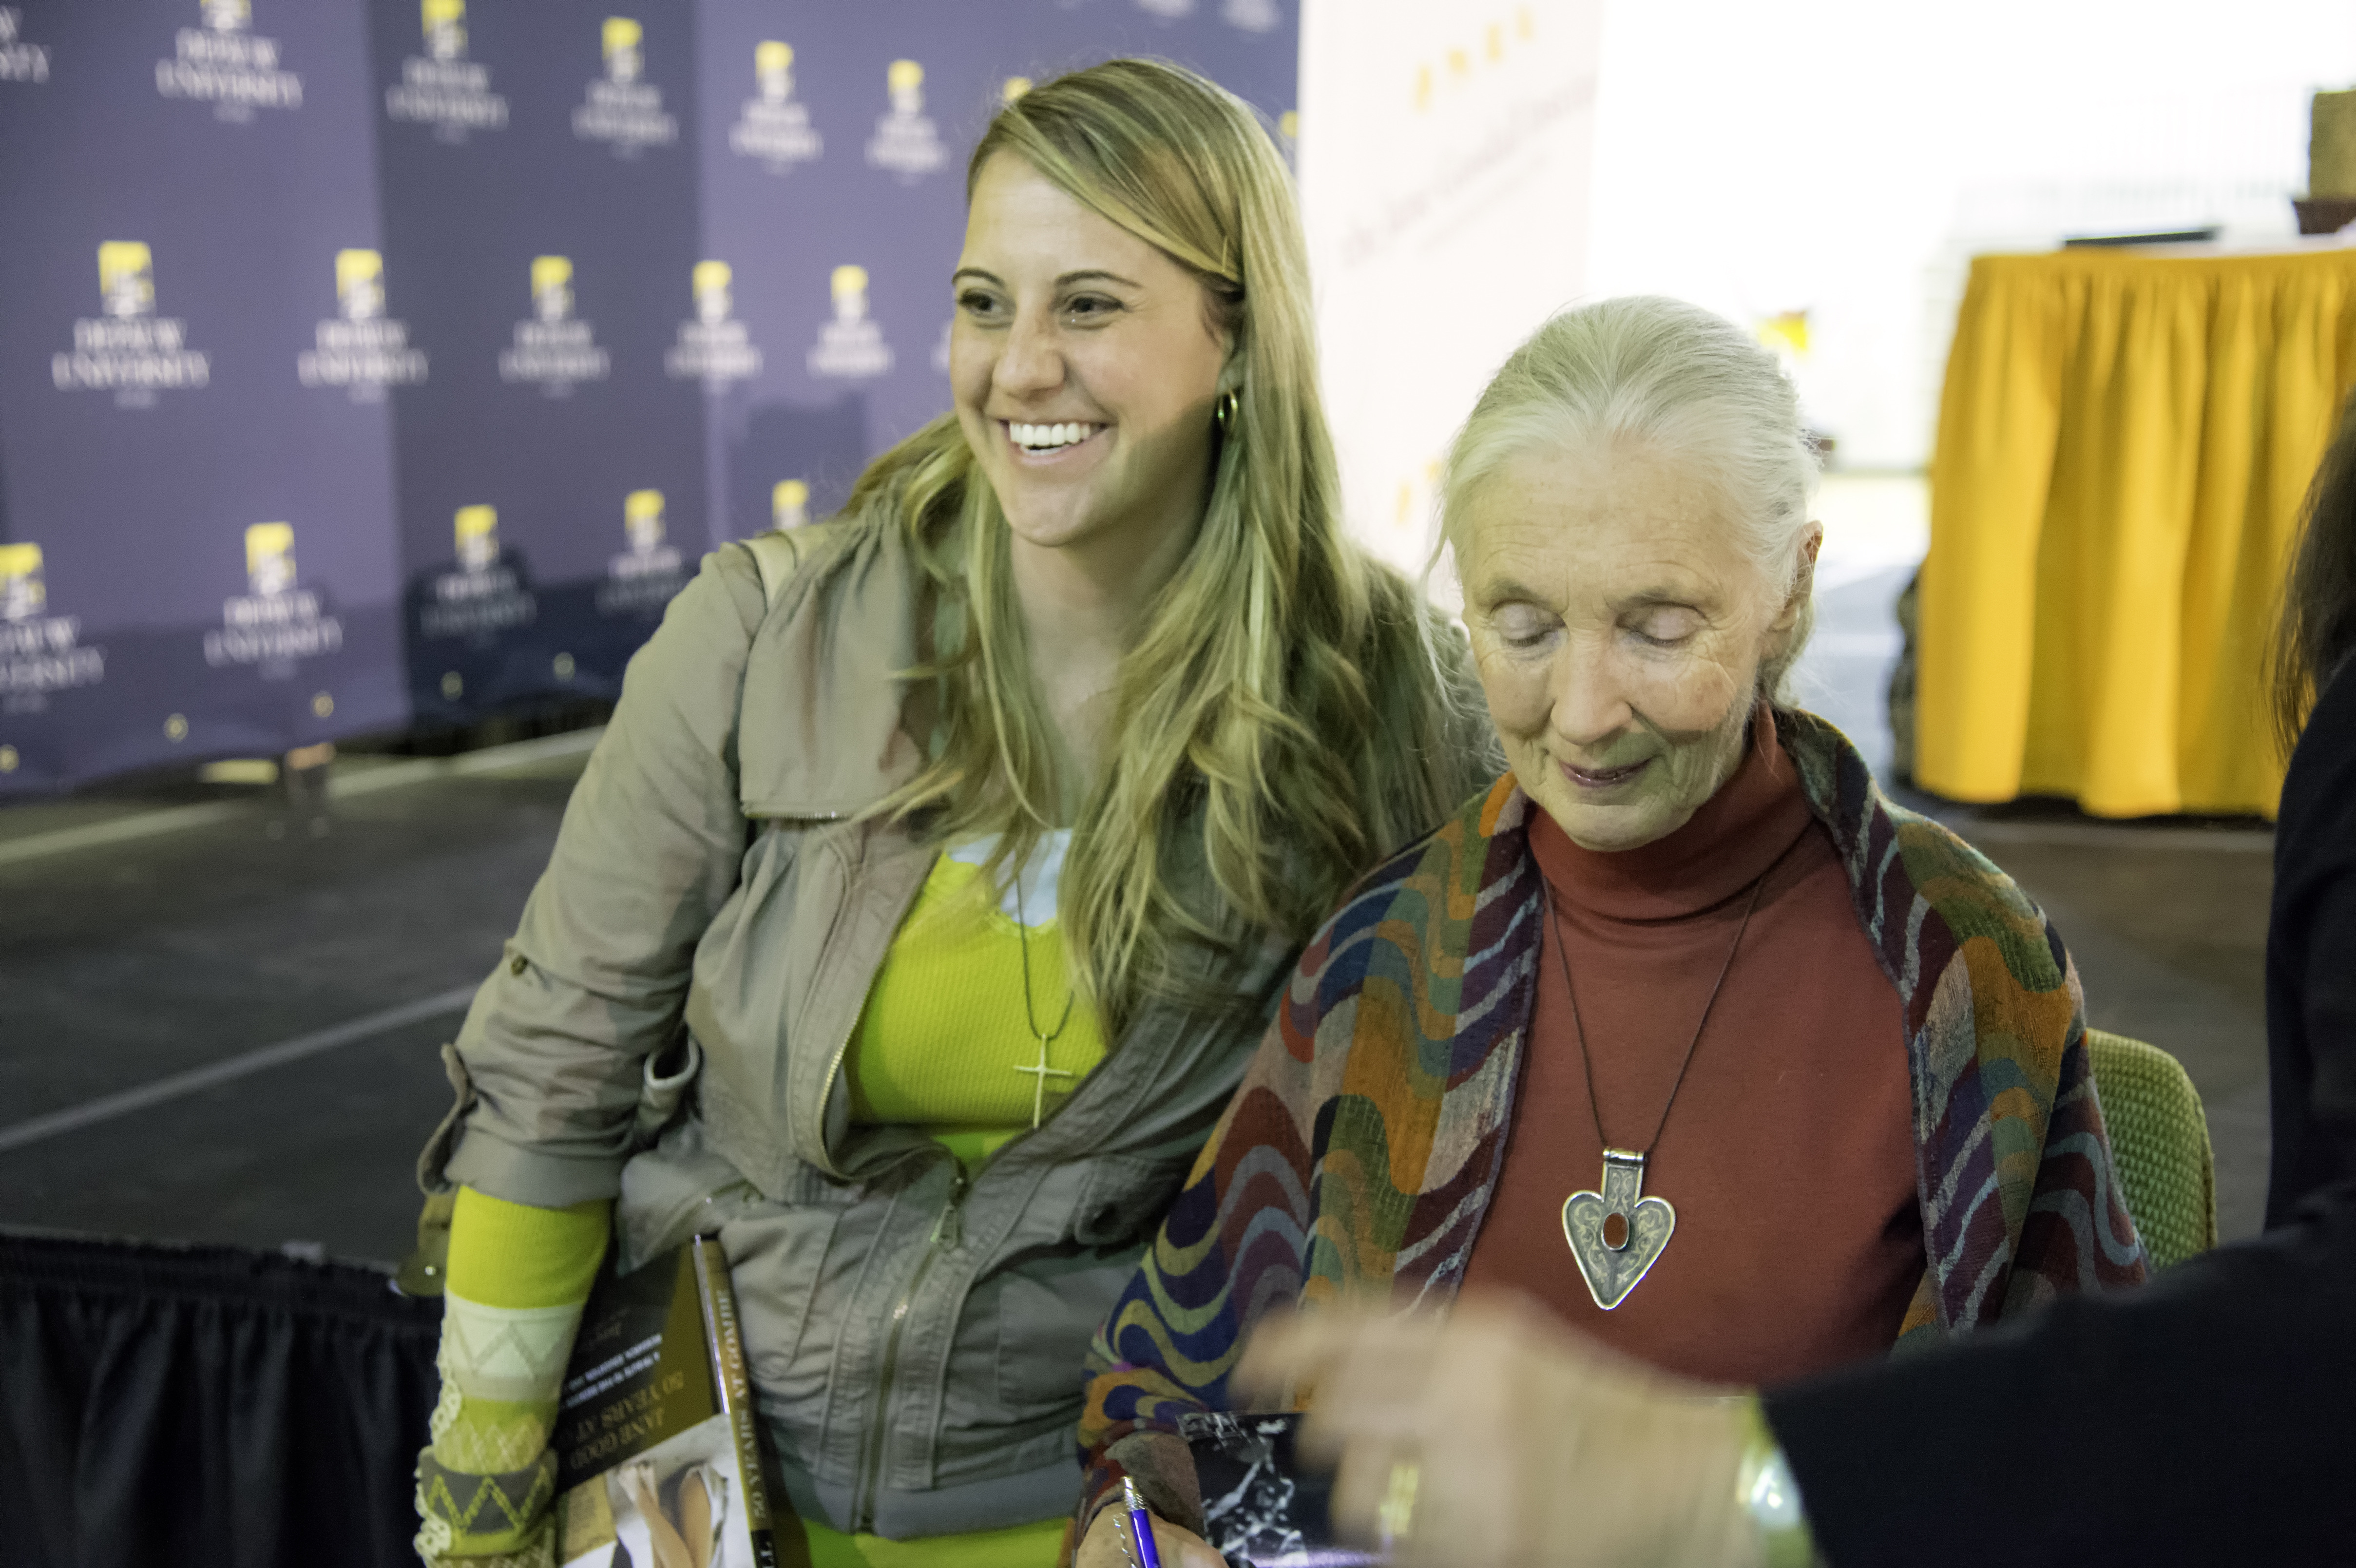 Jane Goodall's April 2013 speech was followed by a book signing.